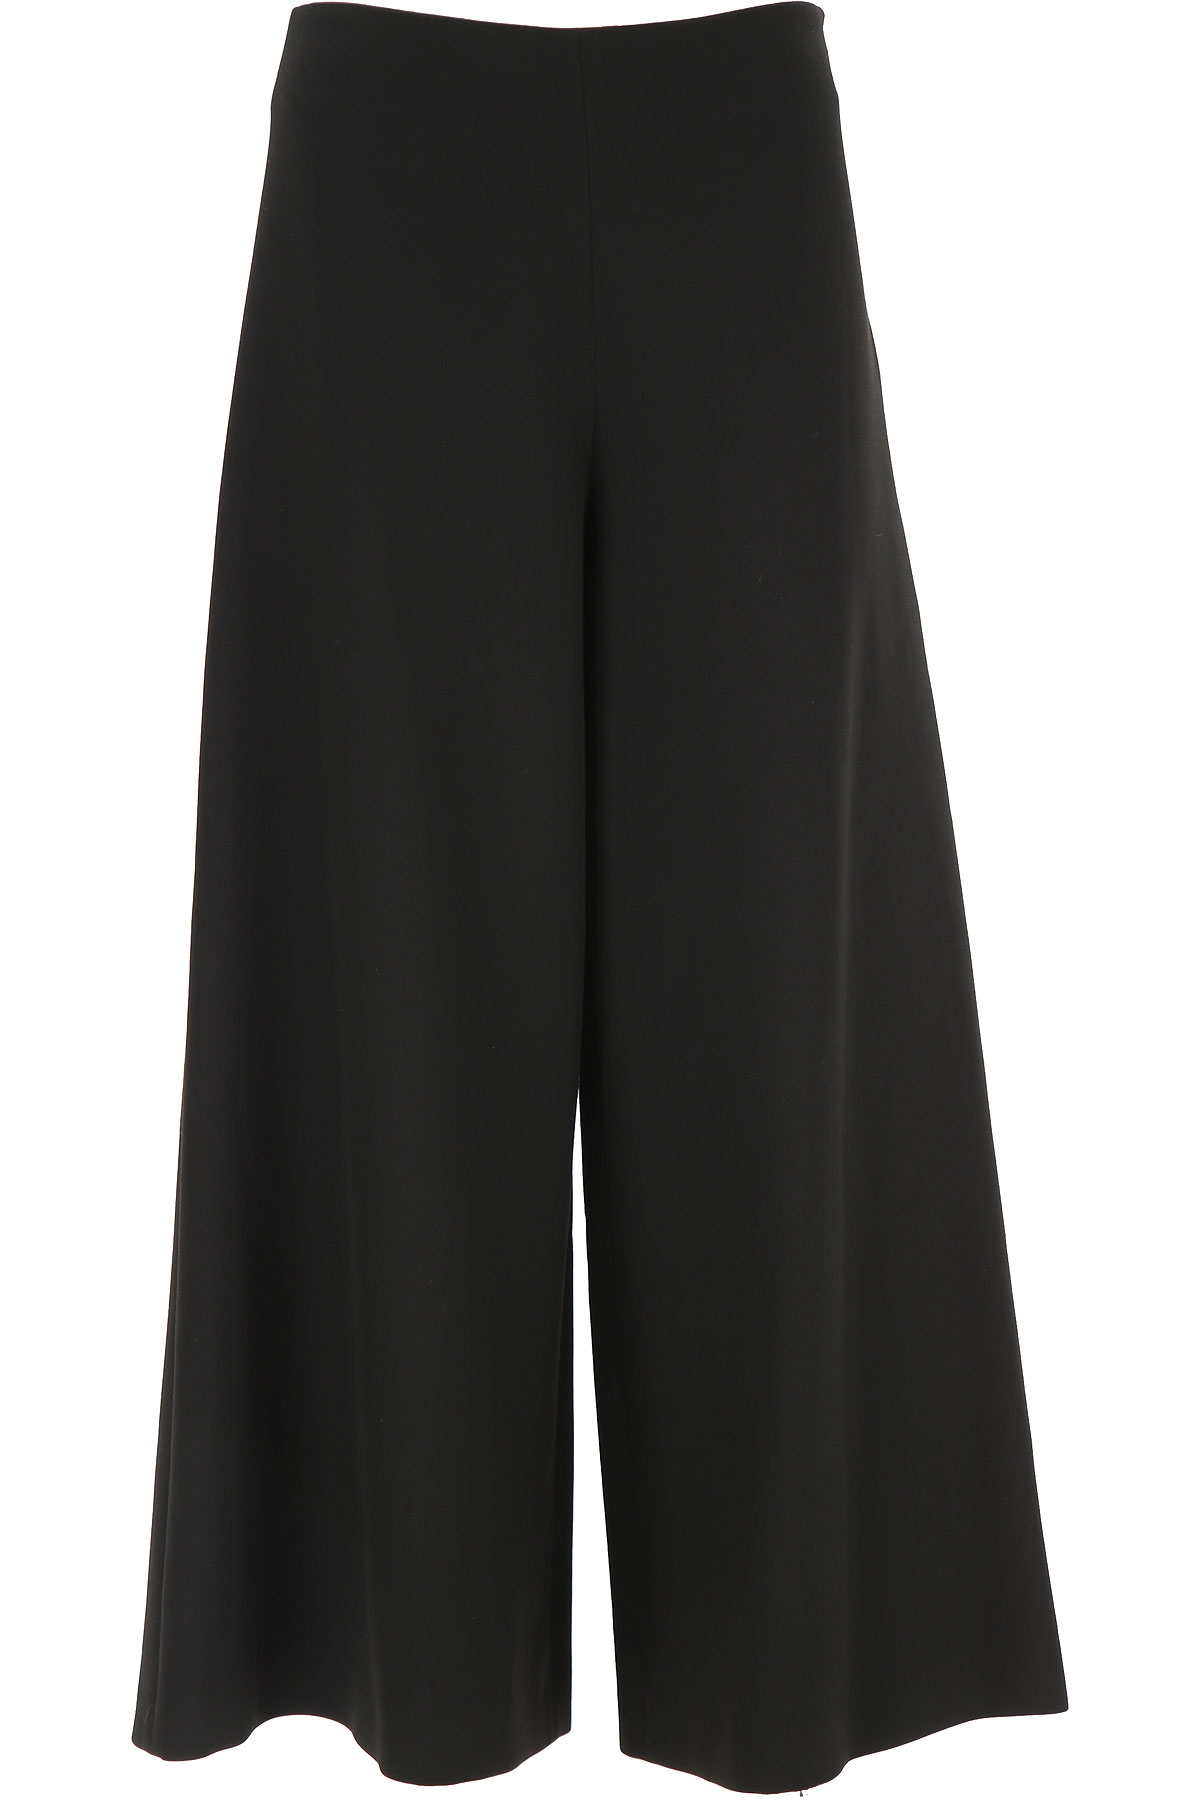 Vivetta Pants for Women On Sale, Black, polyester, 2019, 26 28 30